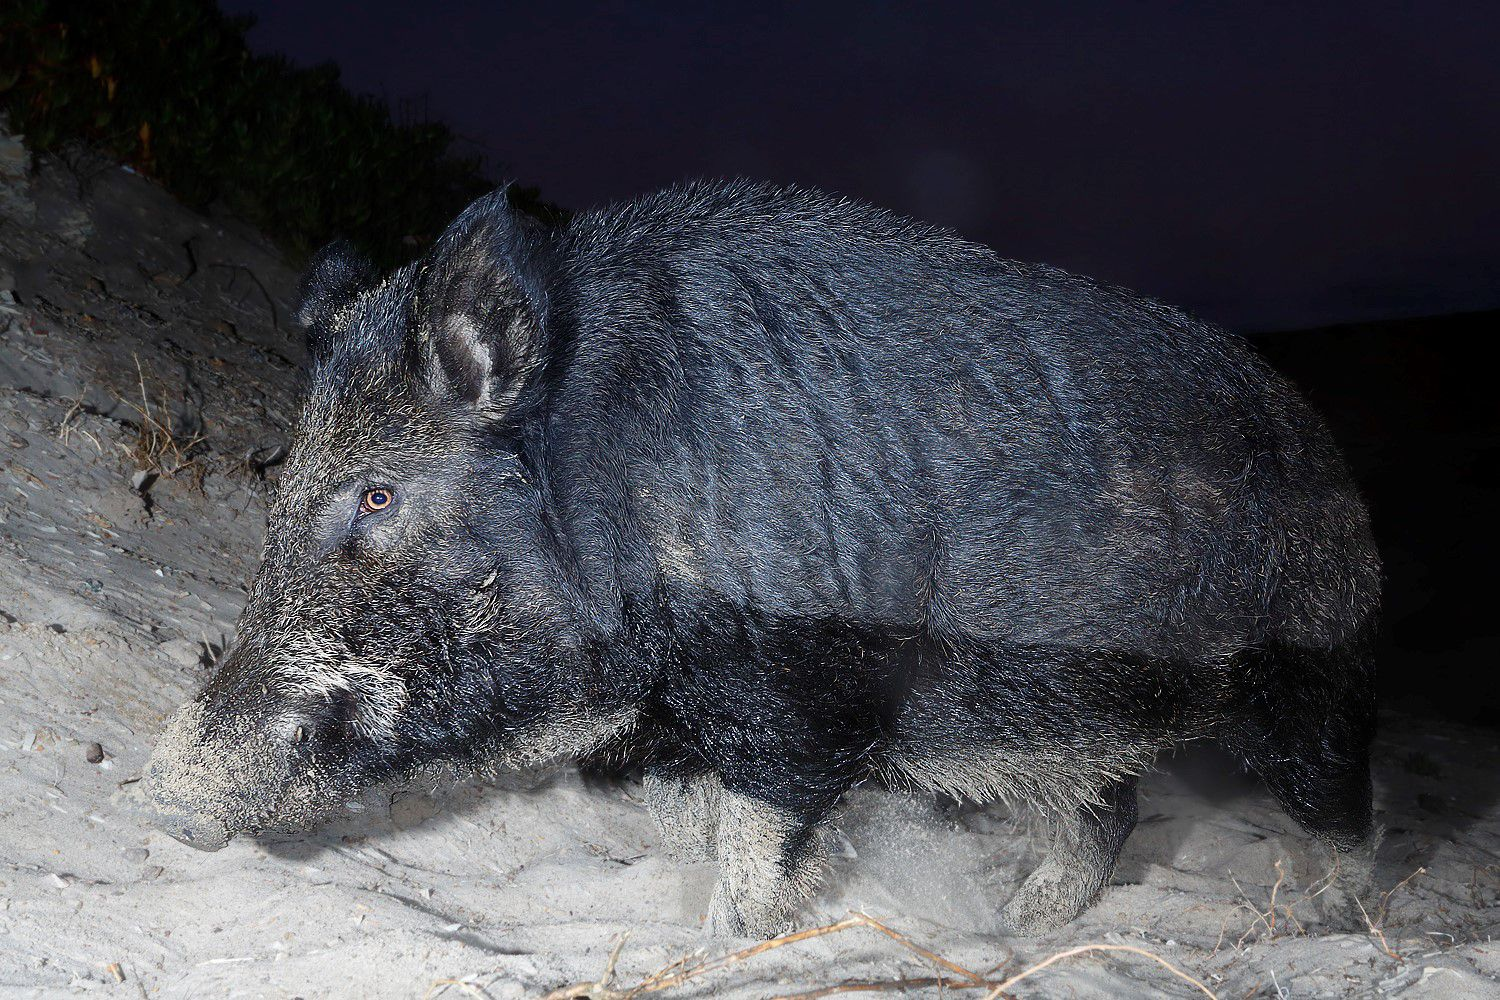 A wild pig with dark grey fur viewed from the side close to the camera on sandy ground.